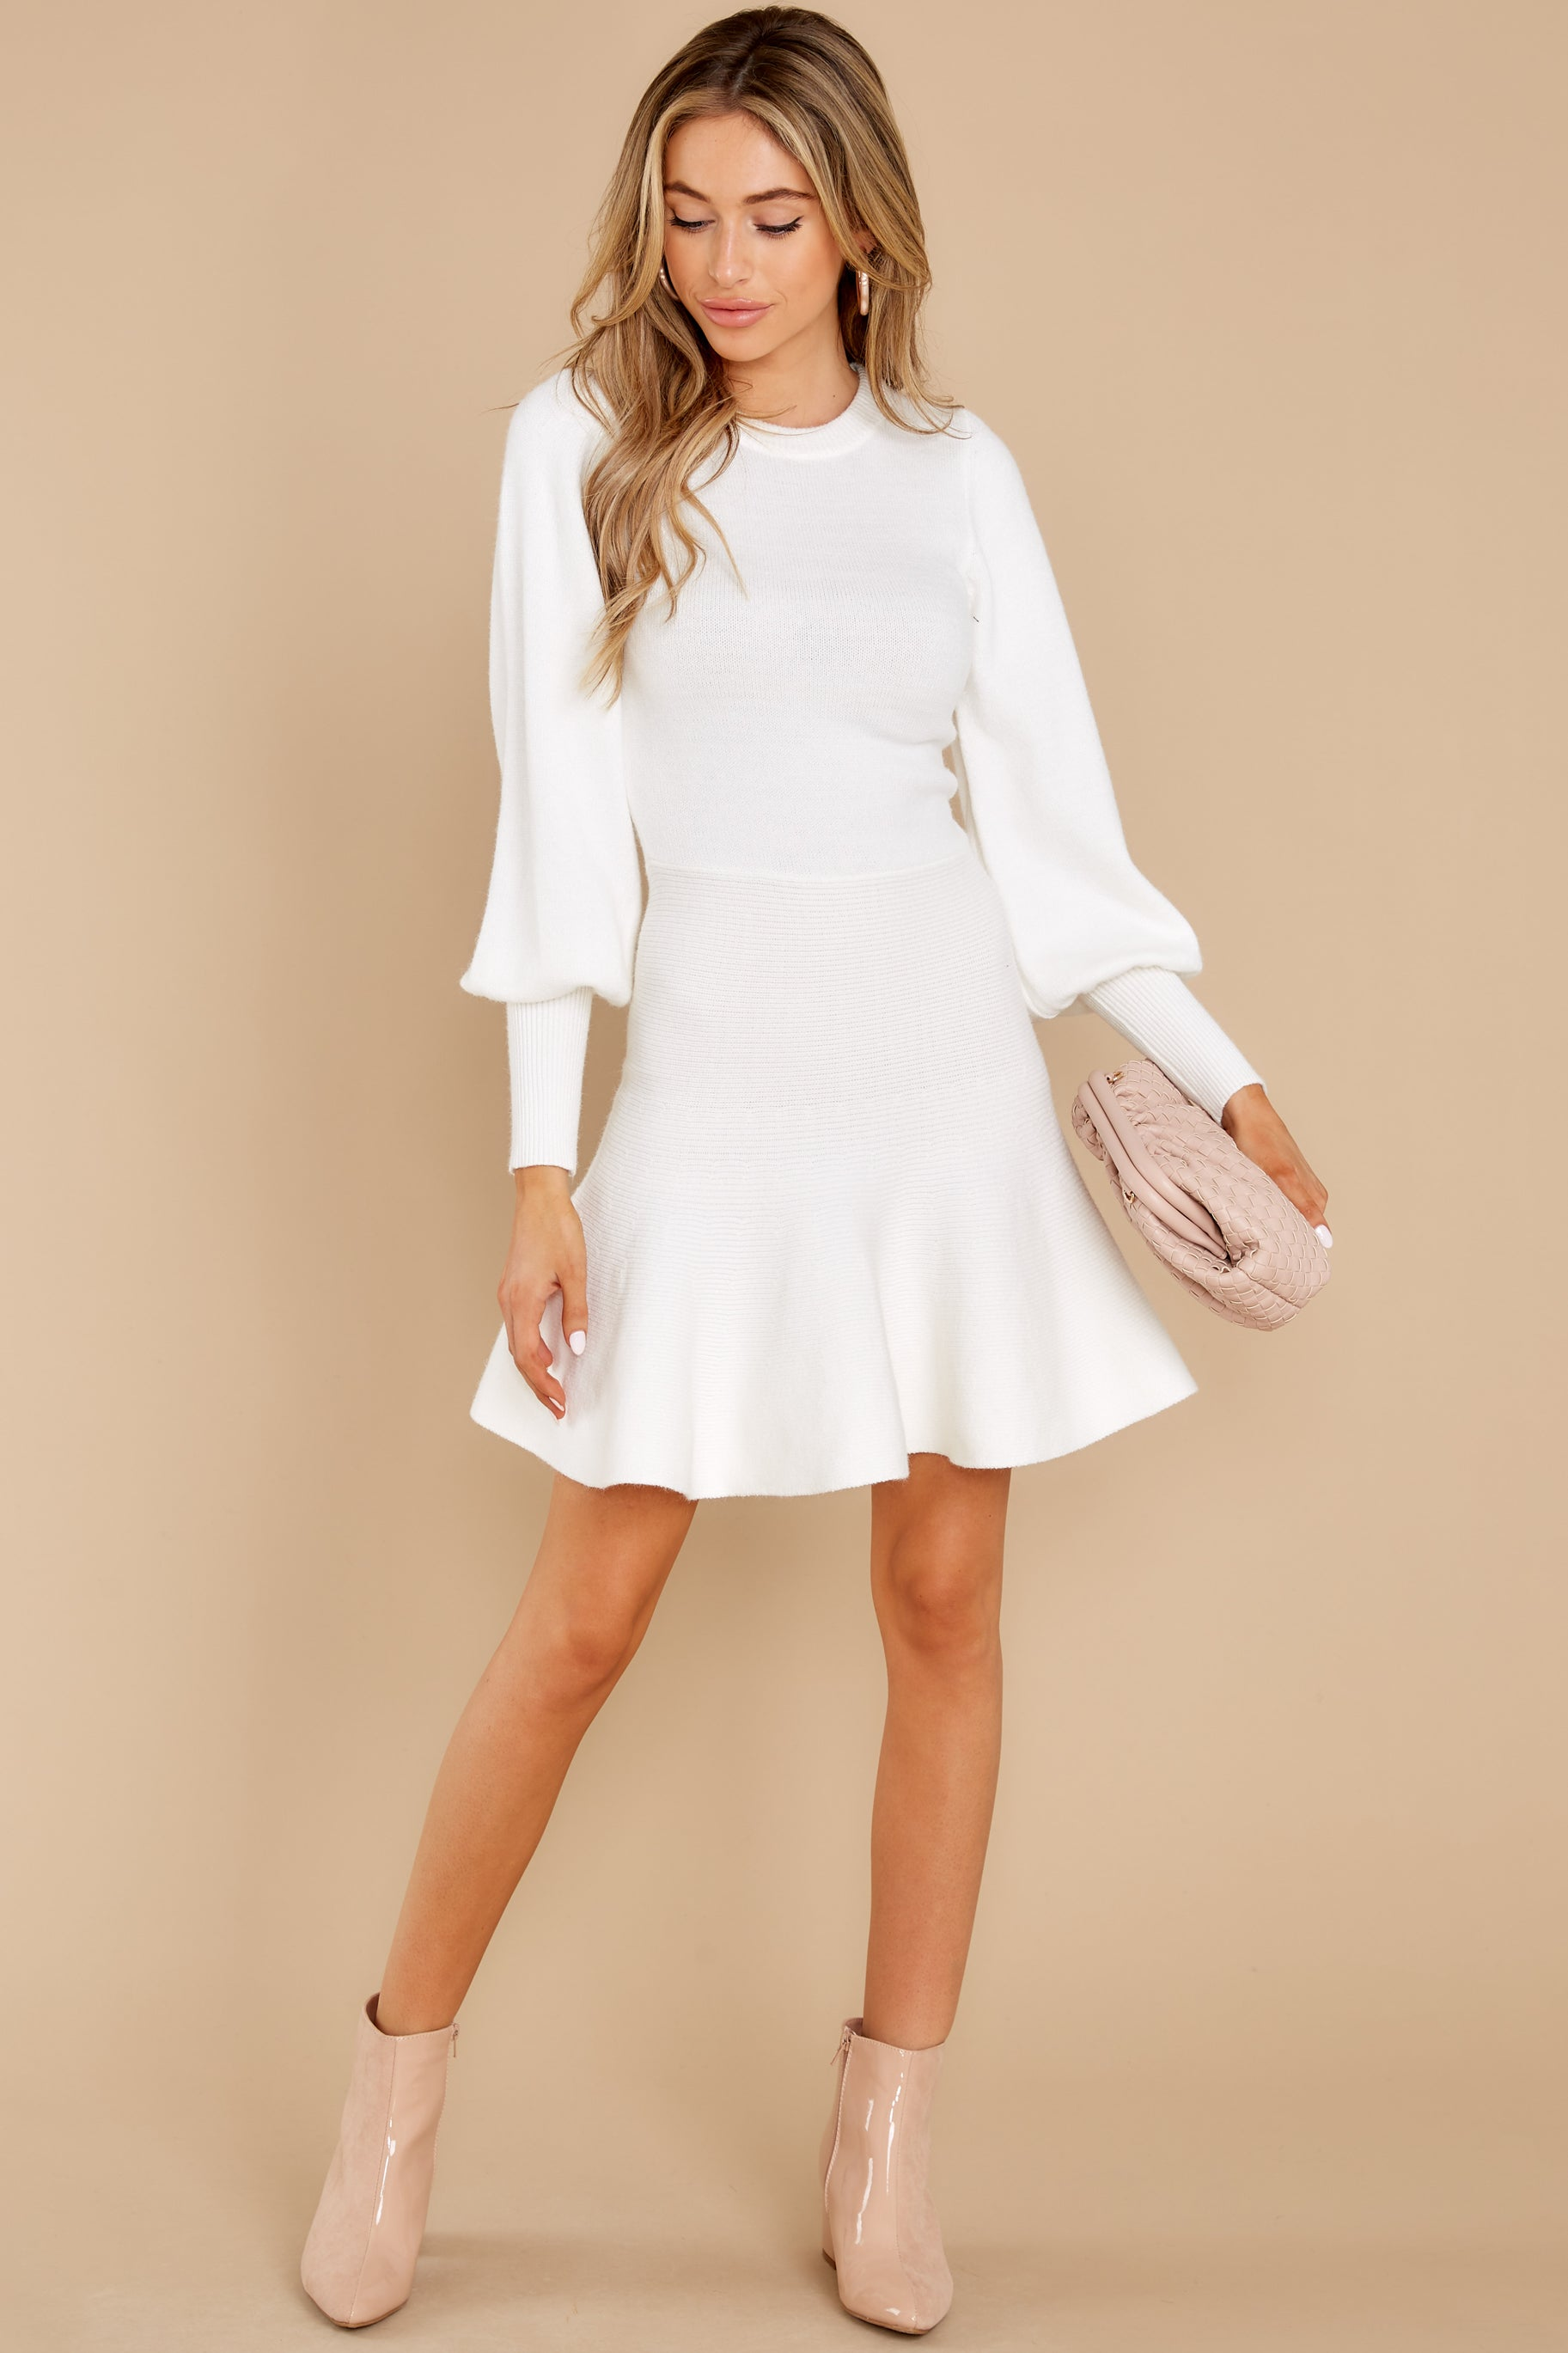 3 Into Me Into You White Sweater Dress at reddress.com